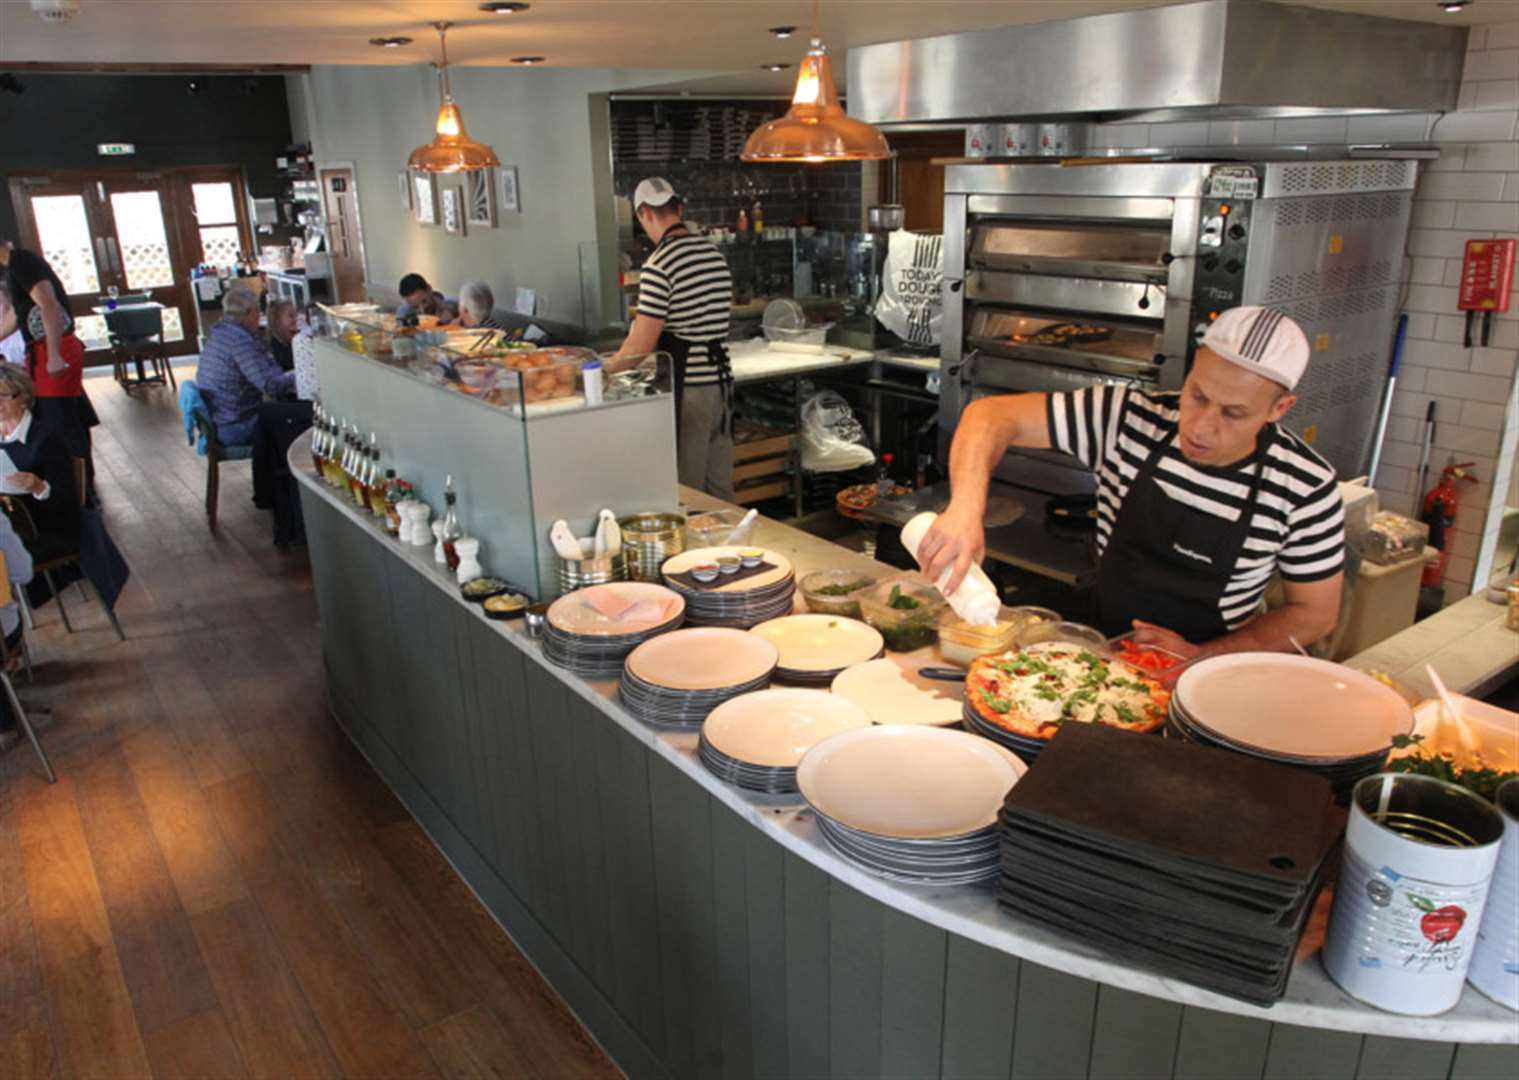 Enjoy A Meal At Revamped Pizzaexpress Restaurant In Stamford